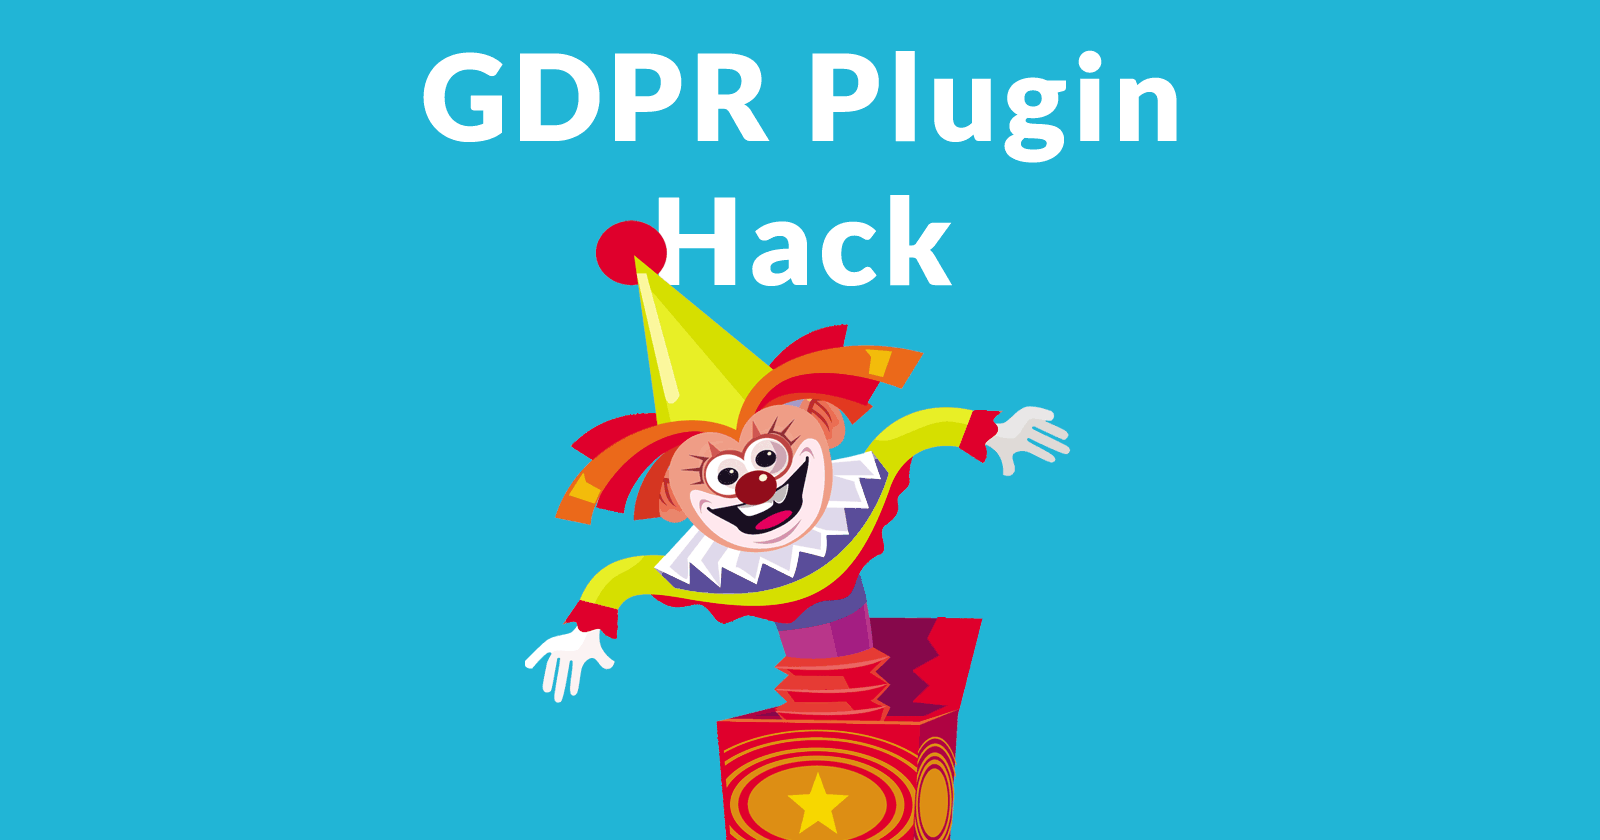 searchenginejournal.com - Roger Montti - WP GDPR Plugin Hacked - Update Immediately